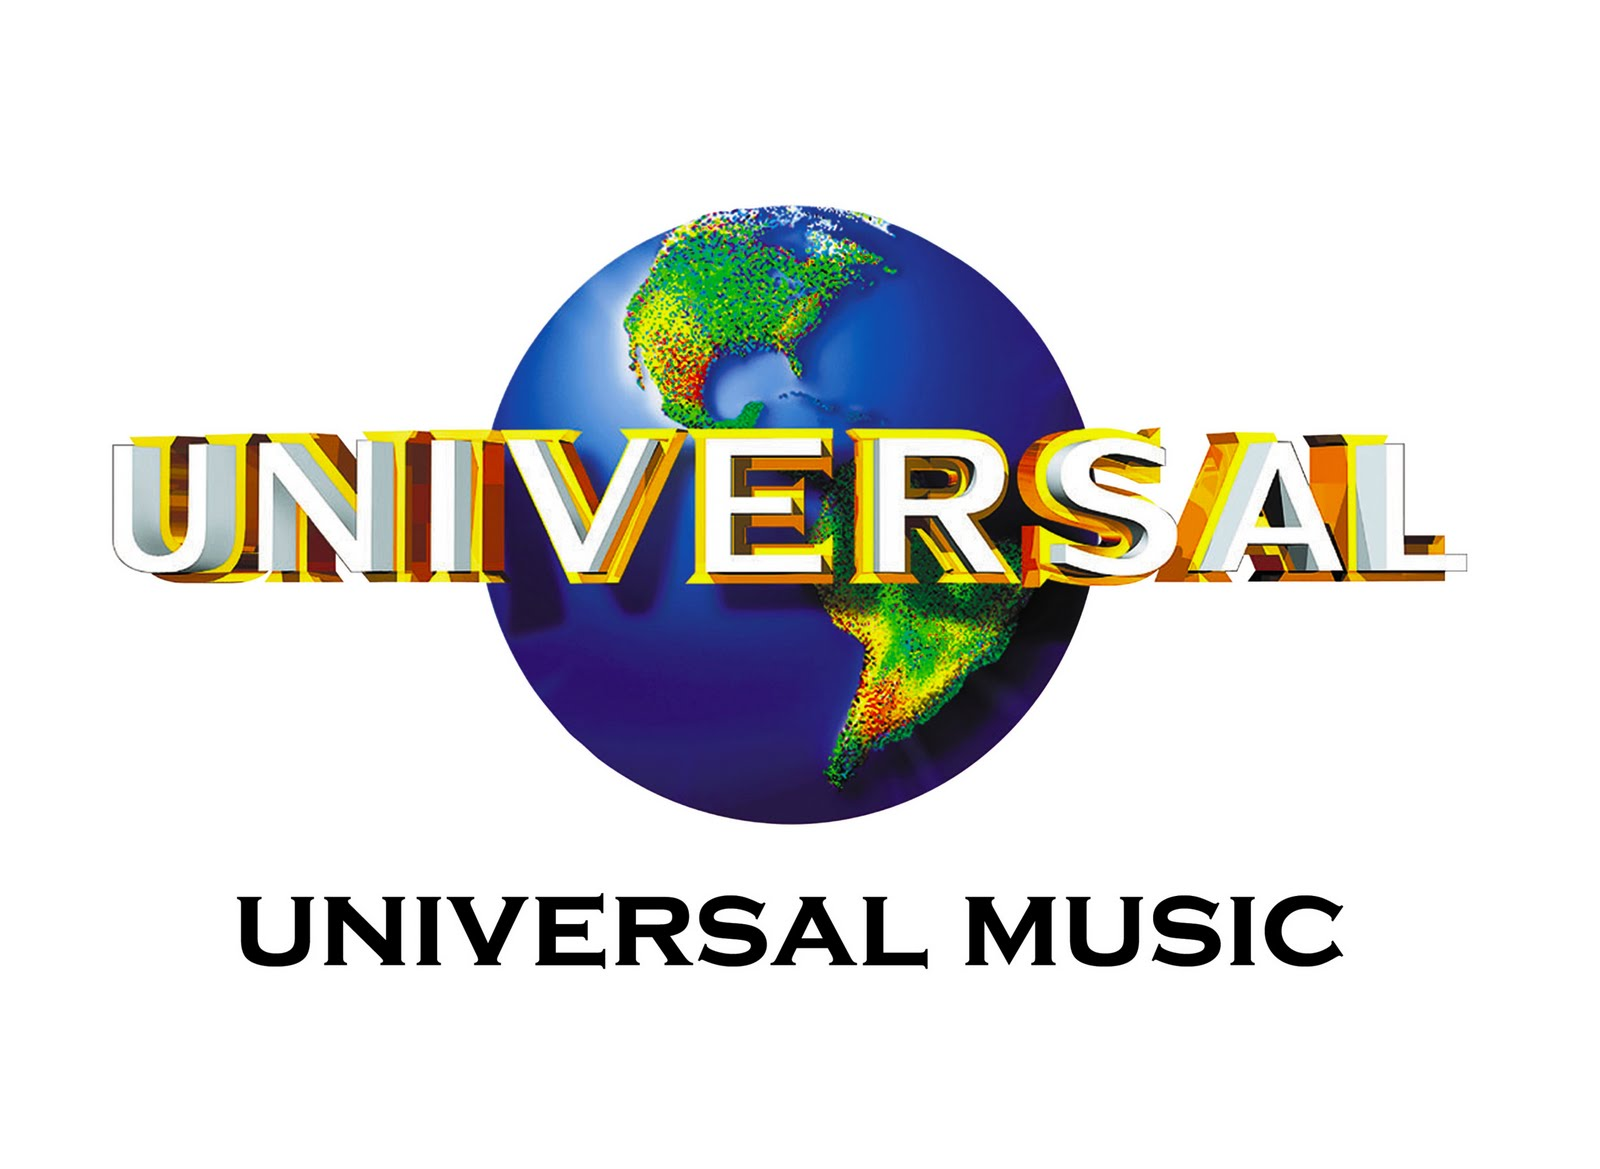 universal music was biggest label of 2012 noise11 com universal music logo eps universal music login